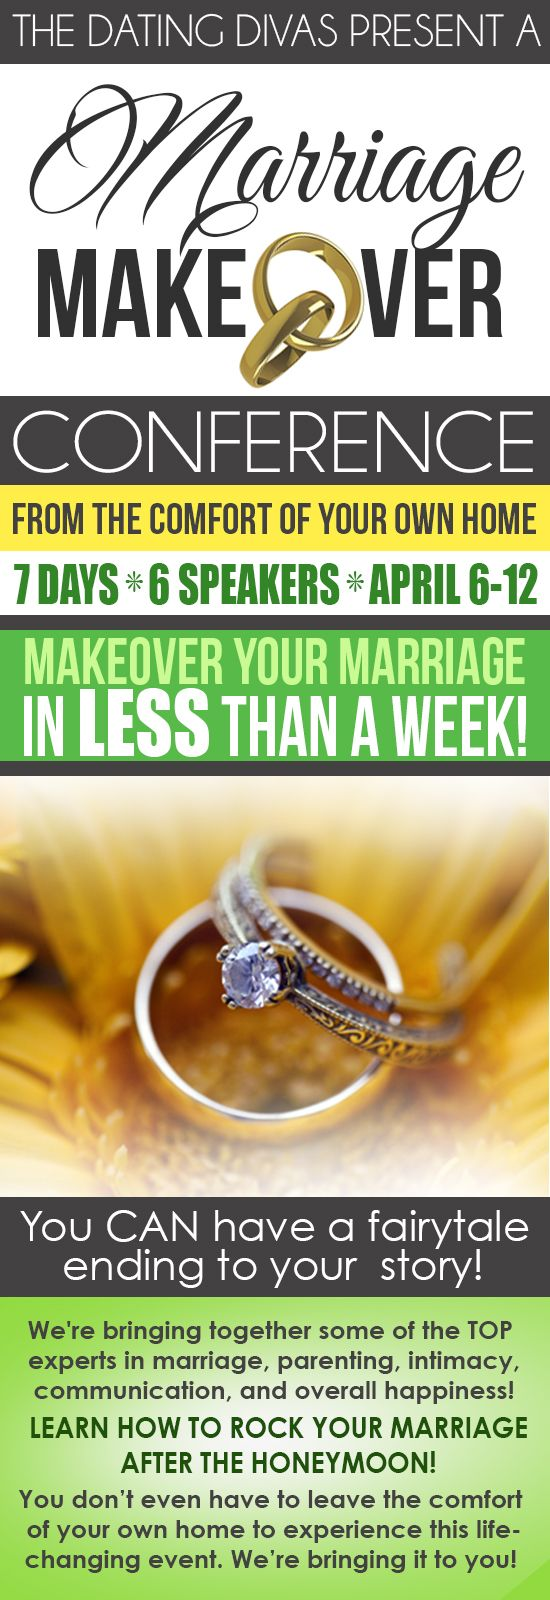 A 7-Day Marriage Makeover Conference from the comfort of your own home!